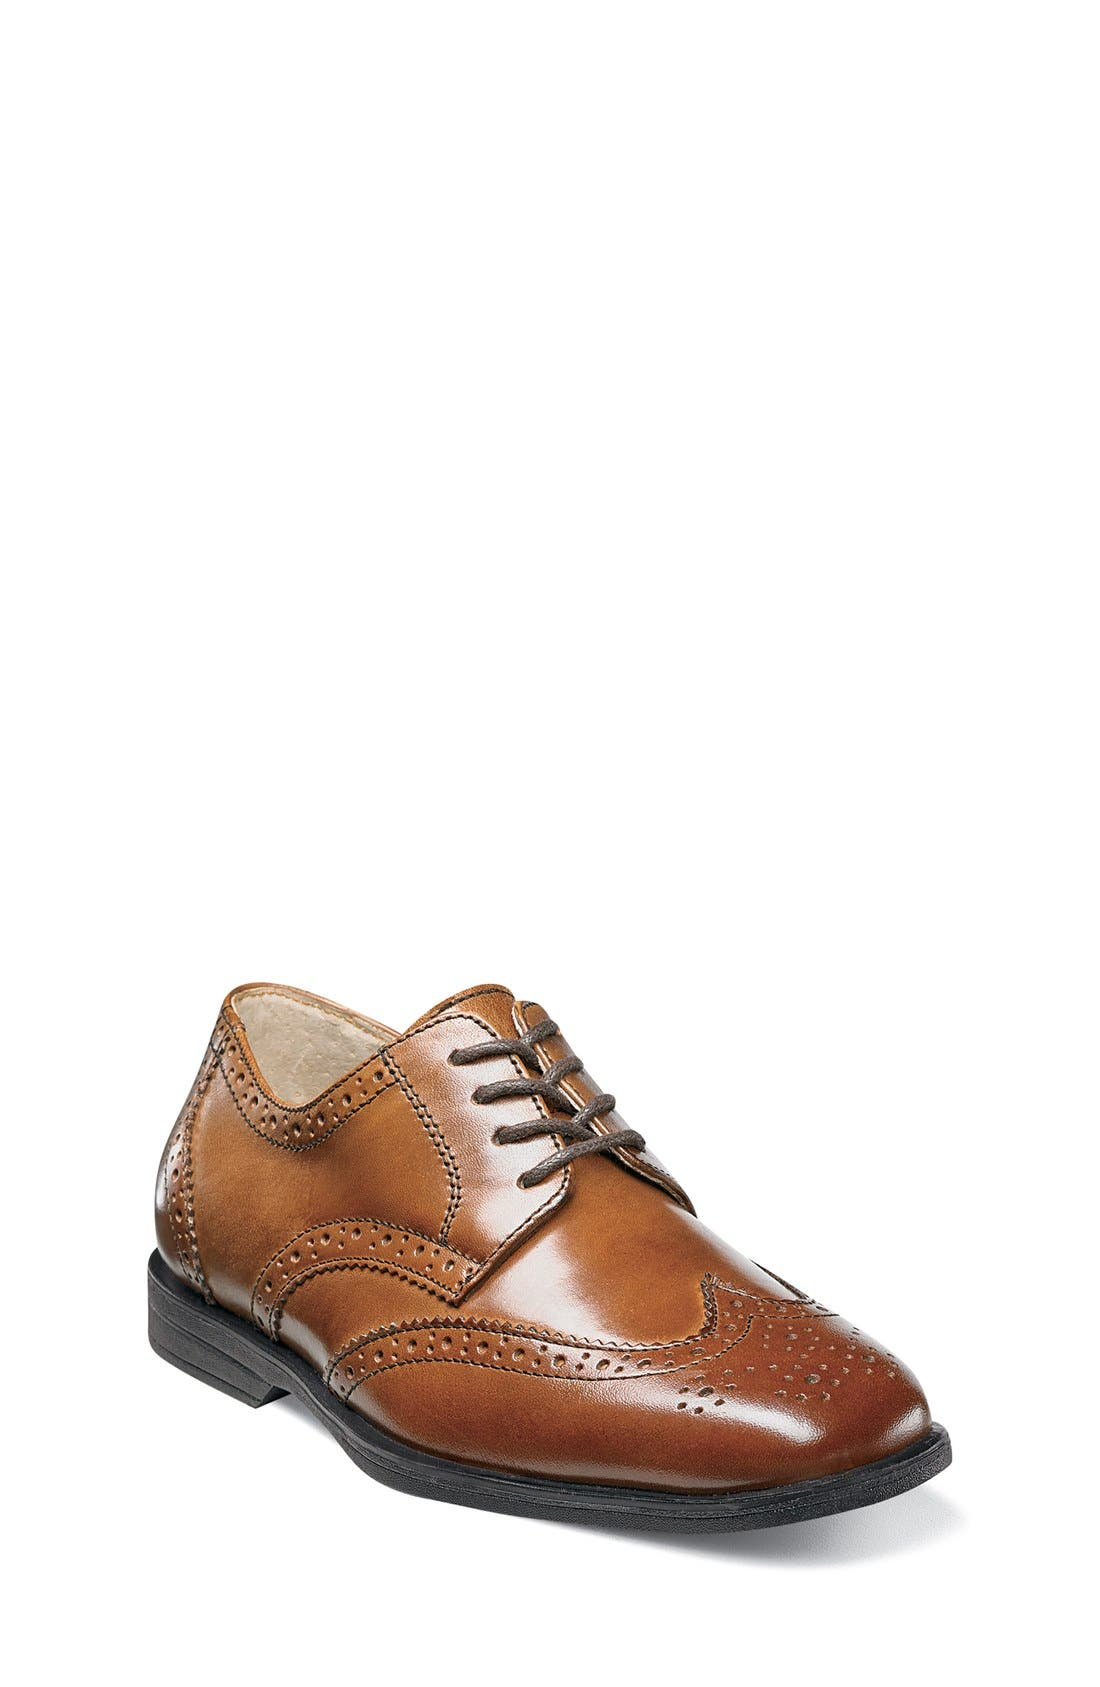 'Reveal' Wingtip Oxford,                         Main,                         color, COGNAC LEATHER